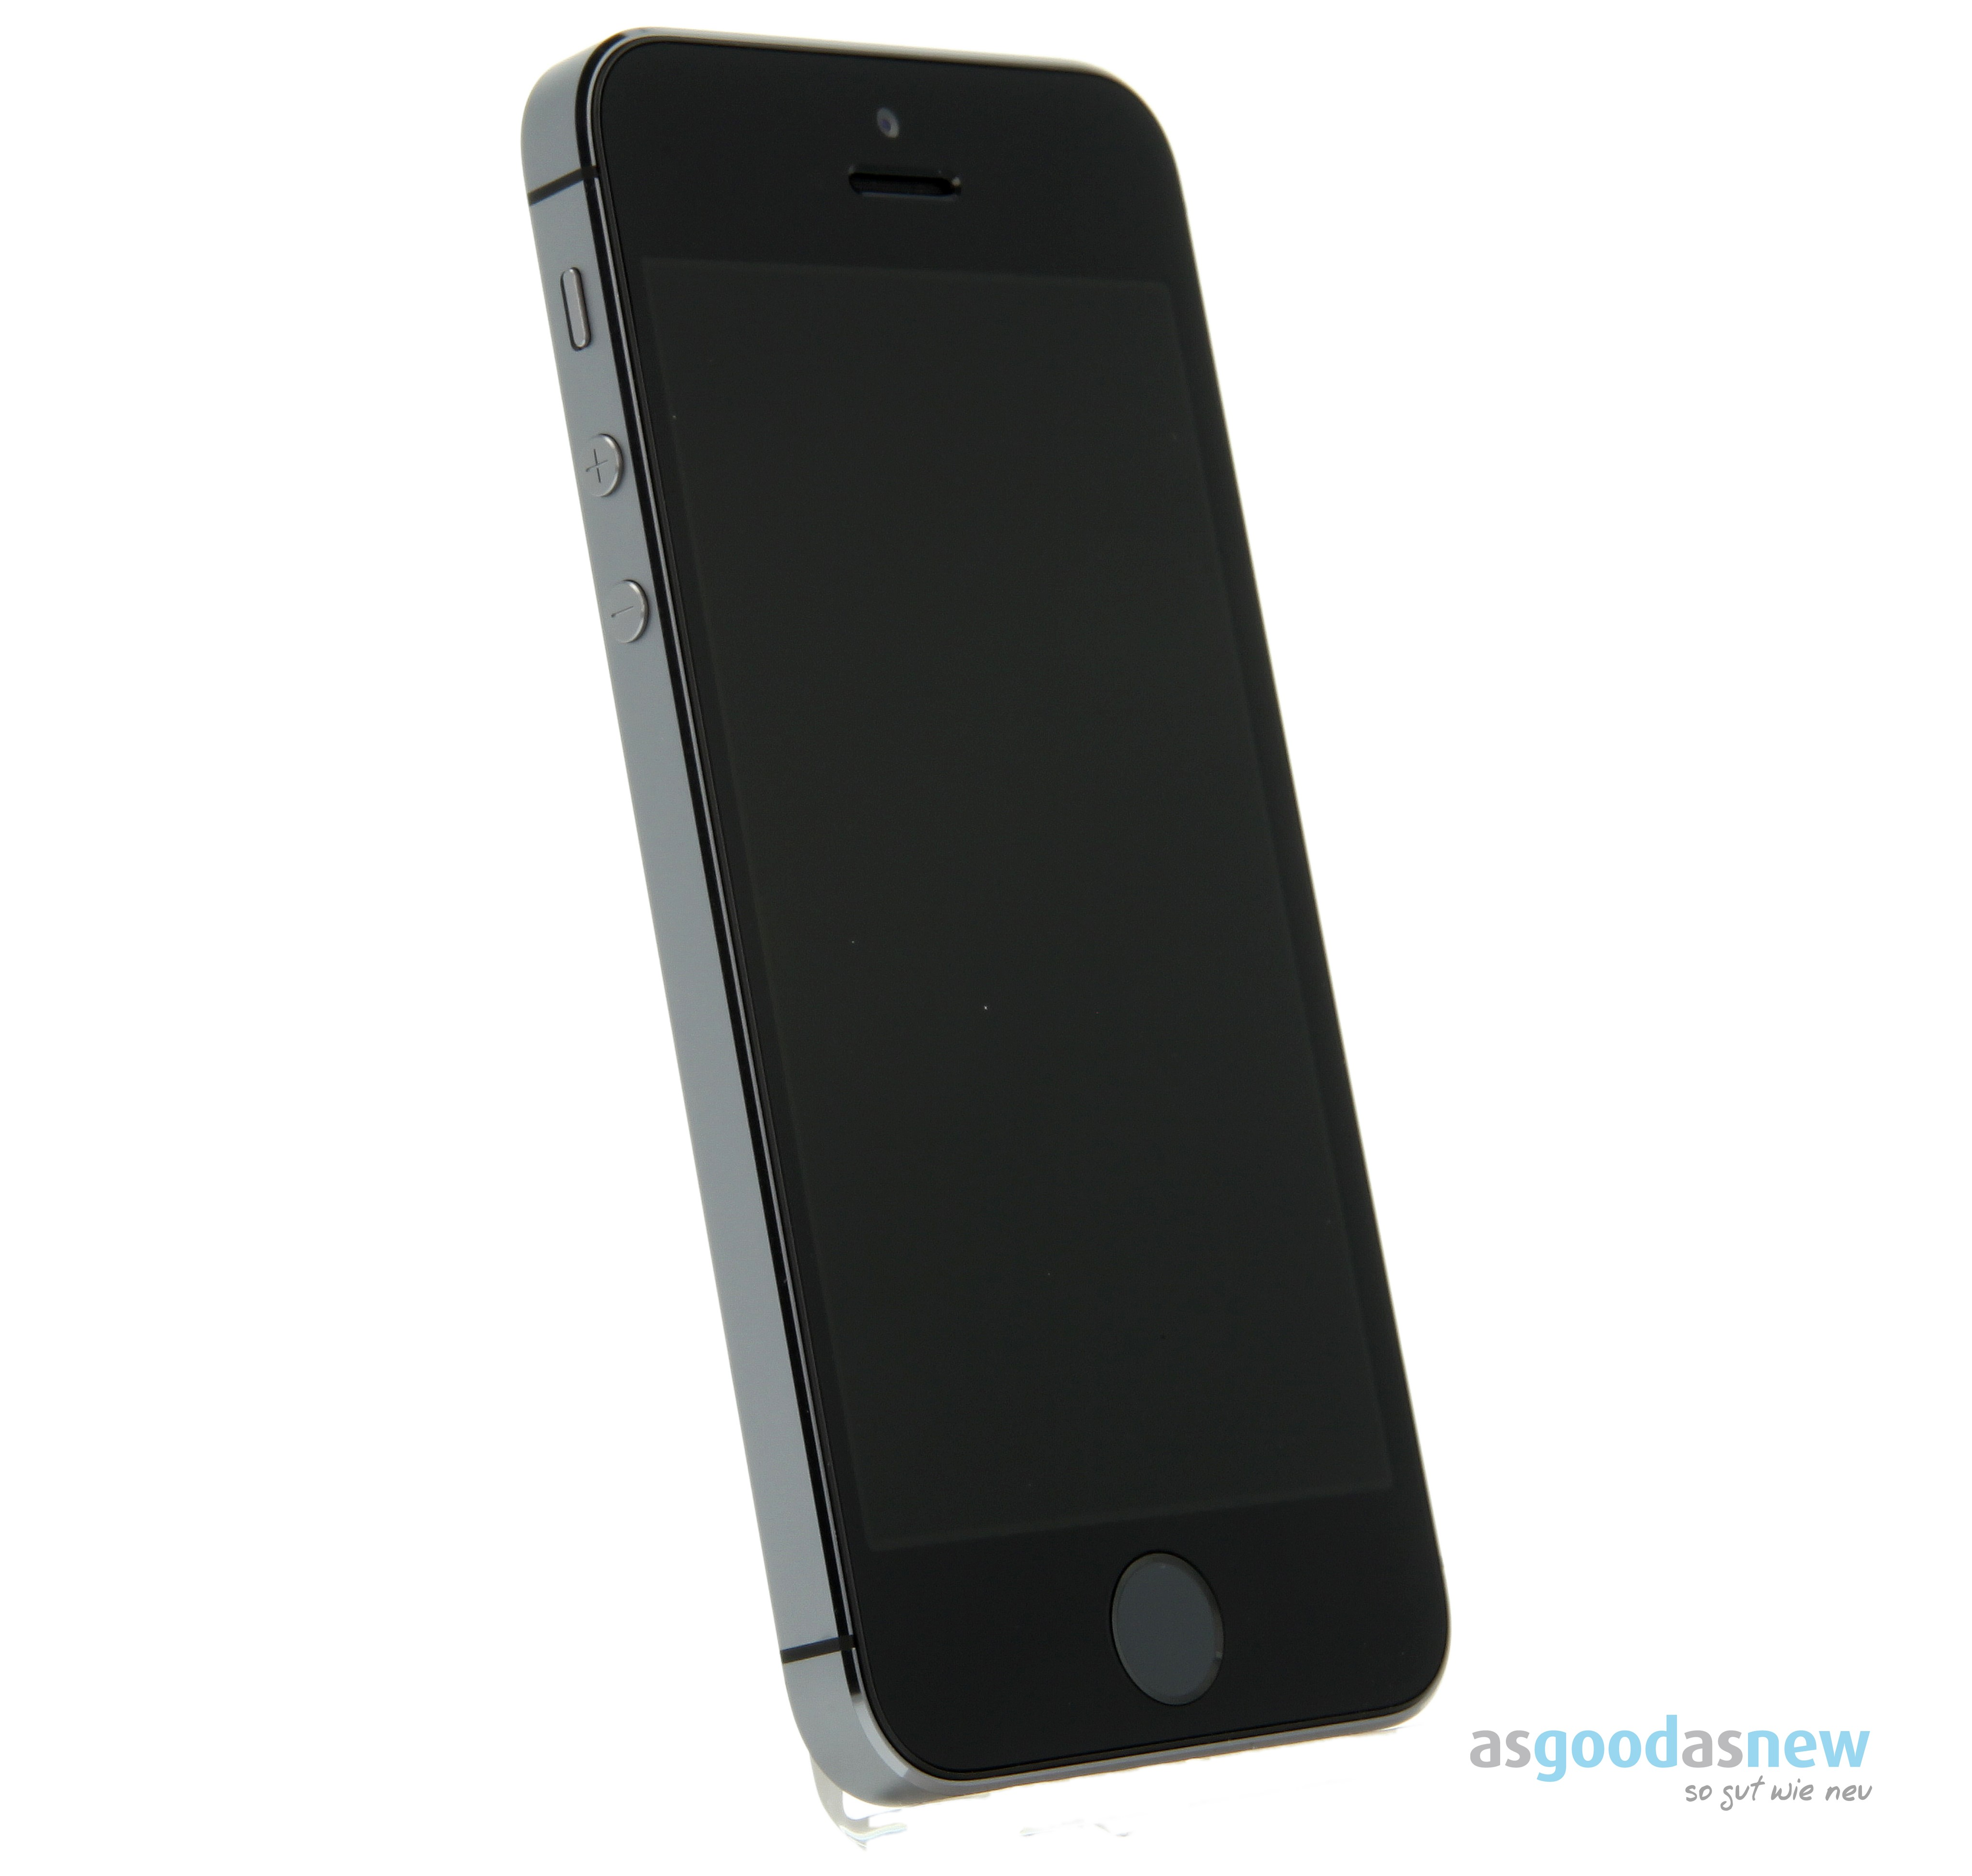 apple iphone 5s 16gb space grau vodafone a1457 gsm. Black Bedroom Furniture Sets. Home Design Ideas